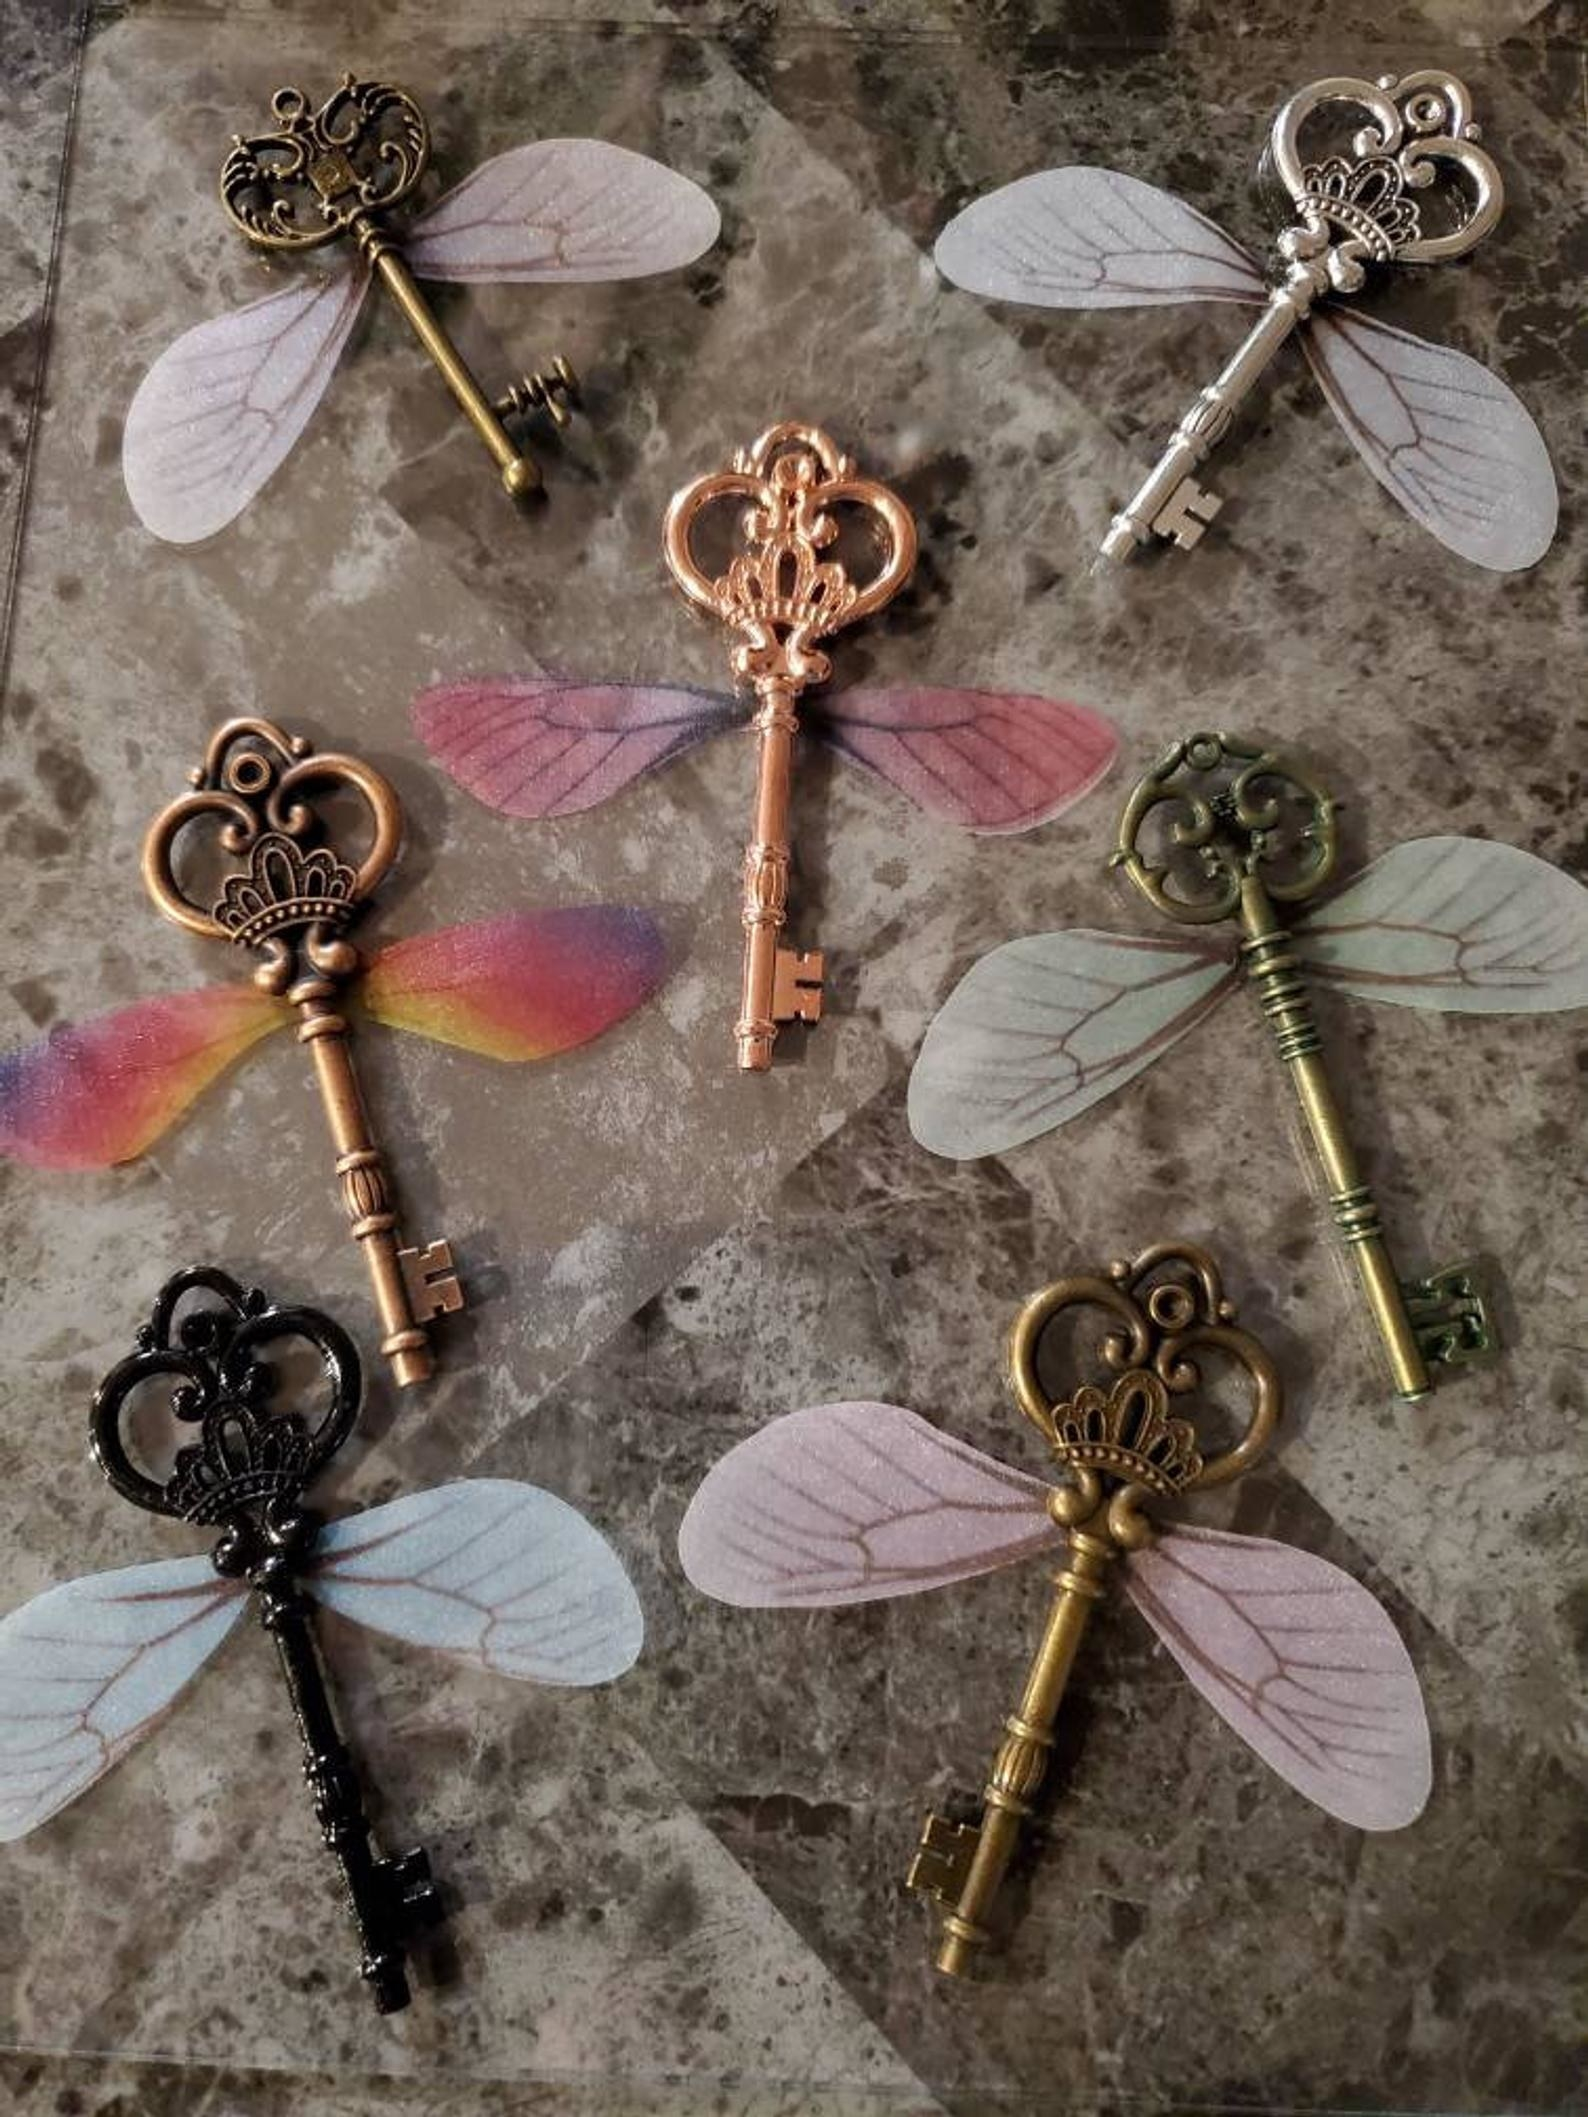 the keys with colored wings attached to them